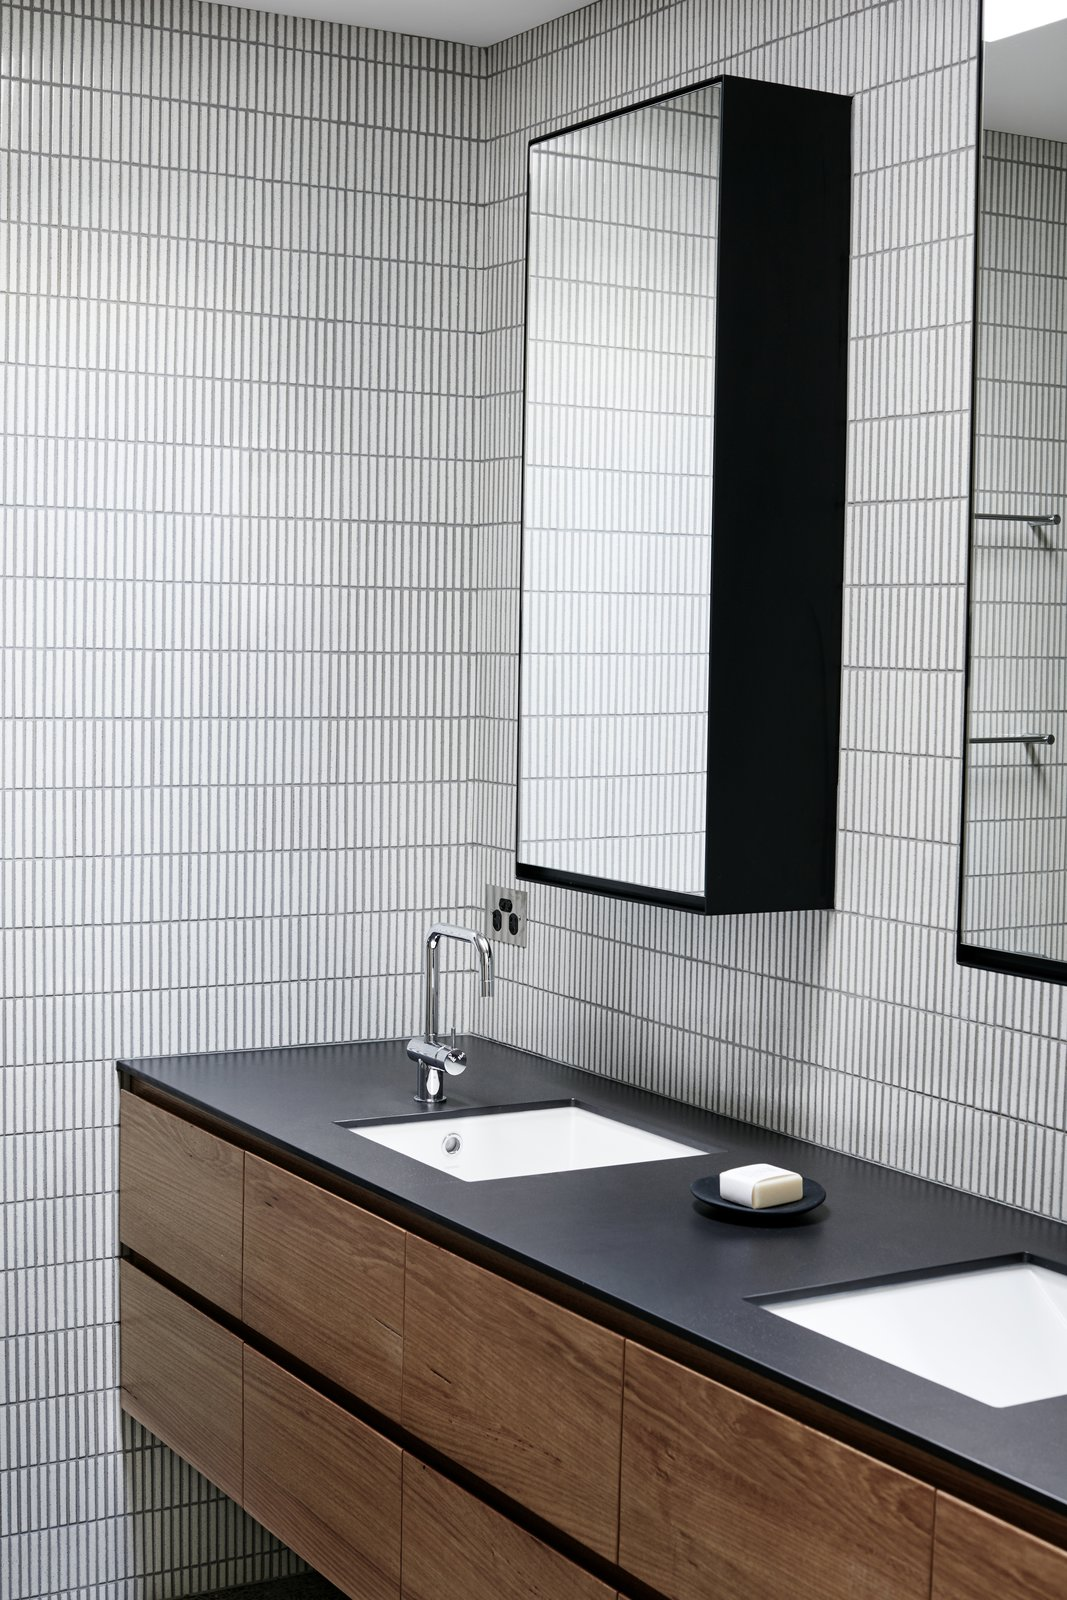 Bath Room, Ceramic Tile Wall, and Undermount Sink  Photo 6 of 9 in Recycled Wood Stars in an Ogle-Worthy Renovation in Australia